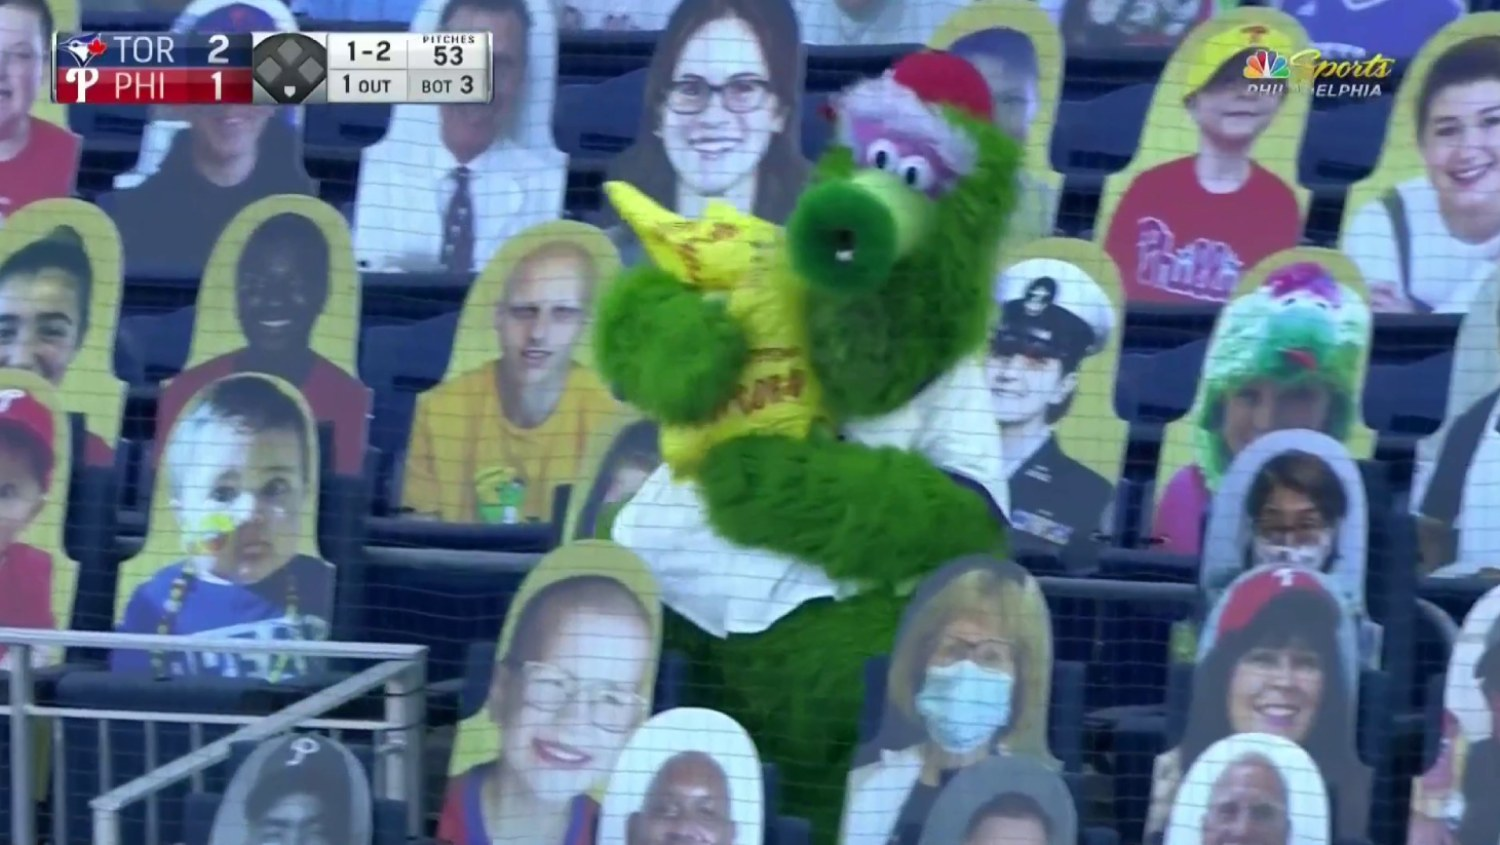 The Phanatic is center of attention in this hysterical clip from Phillies game